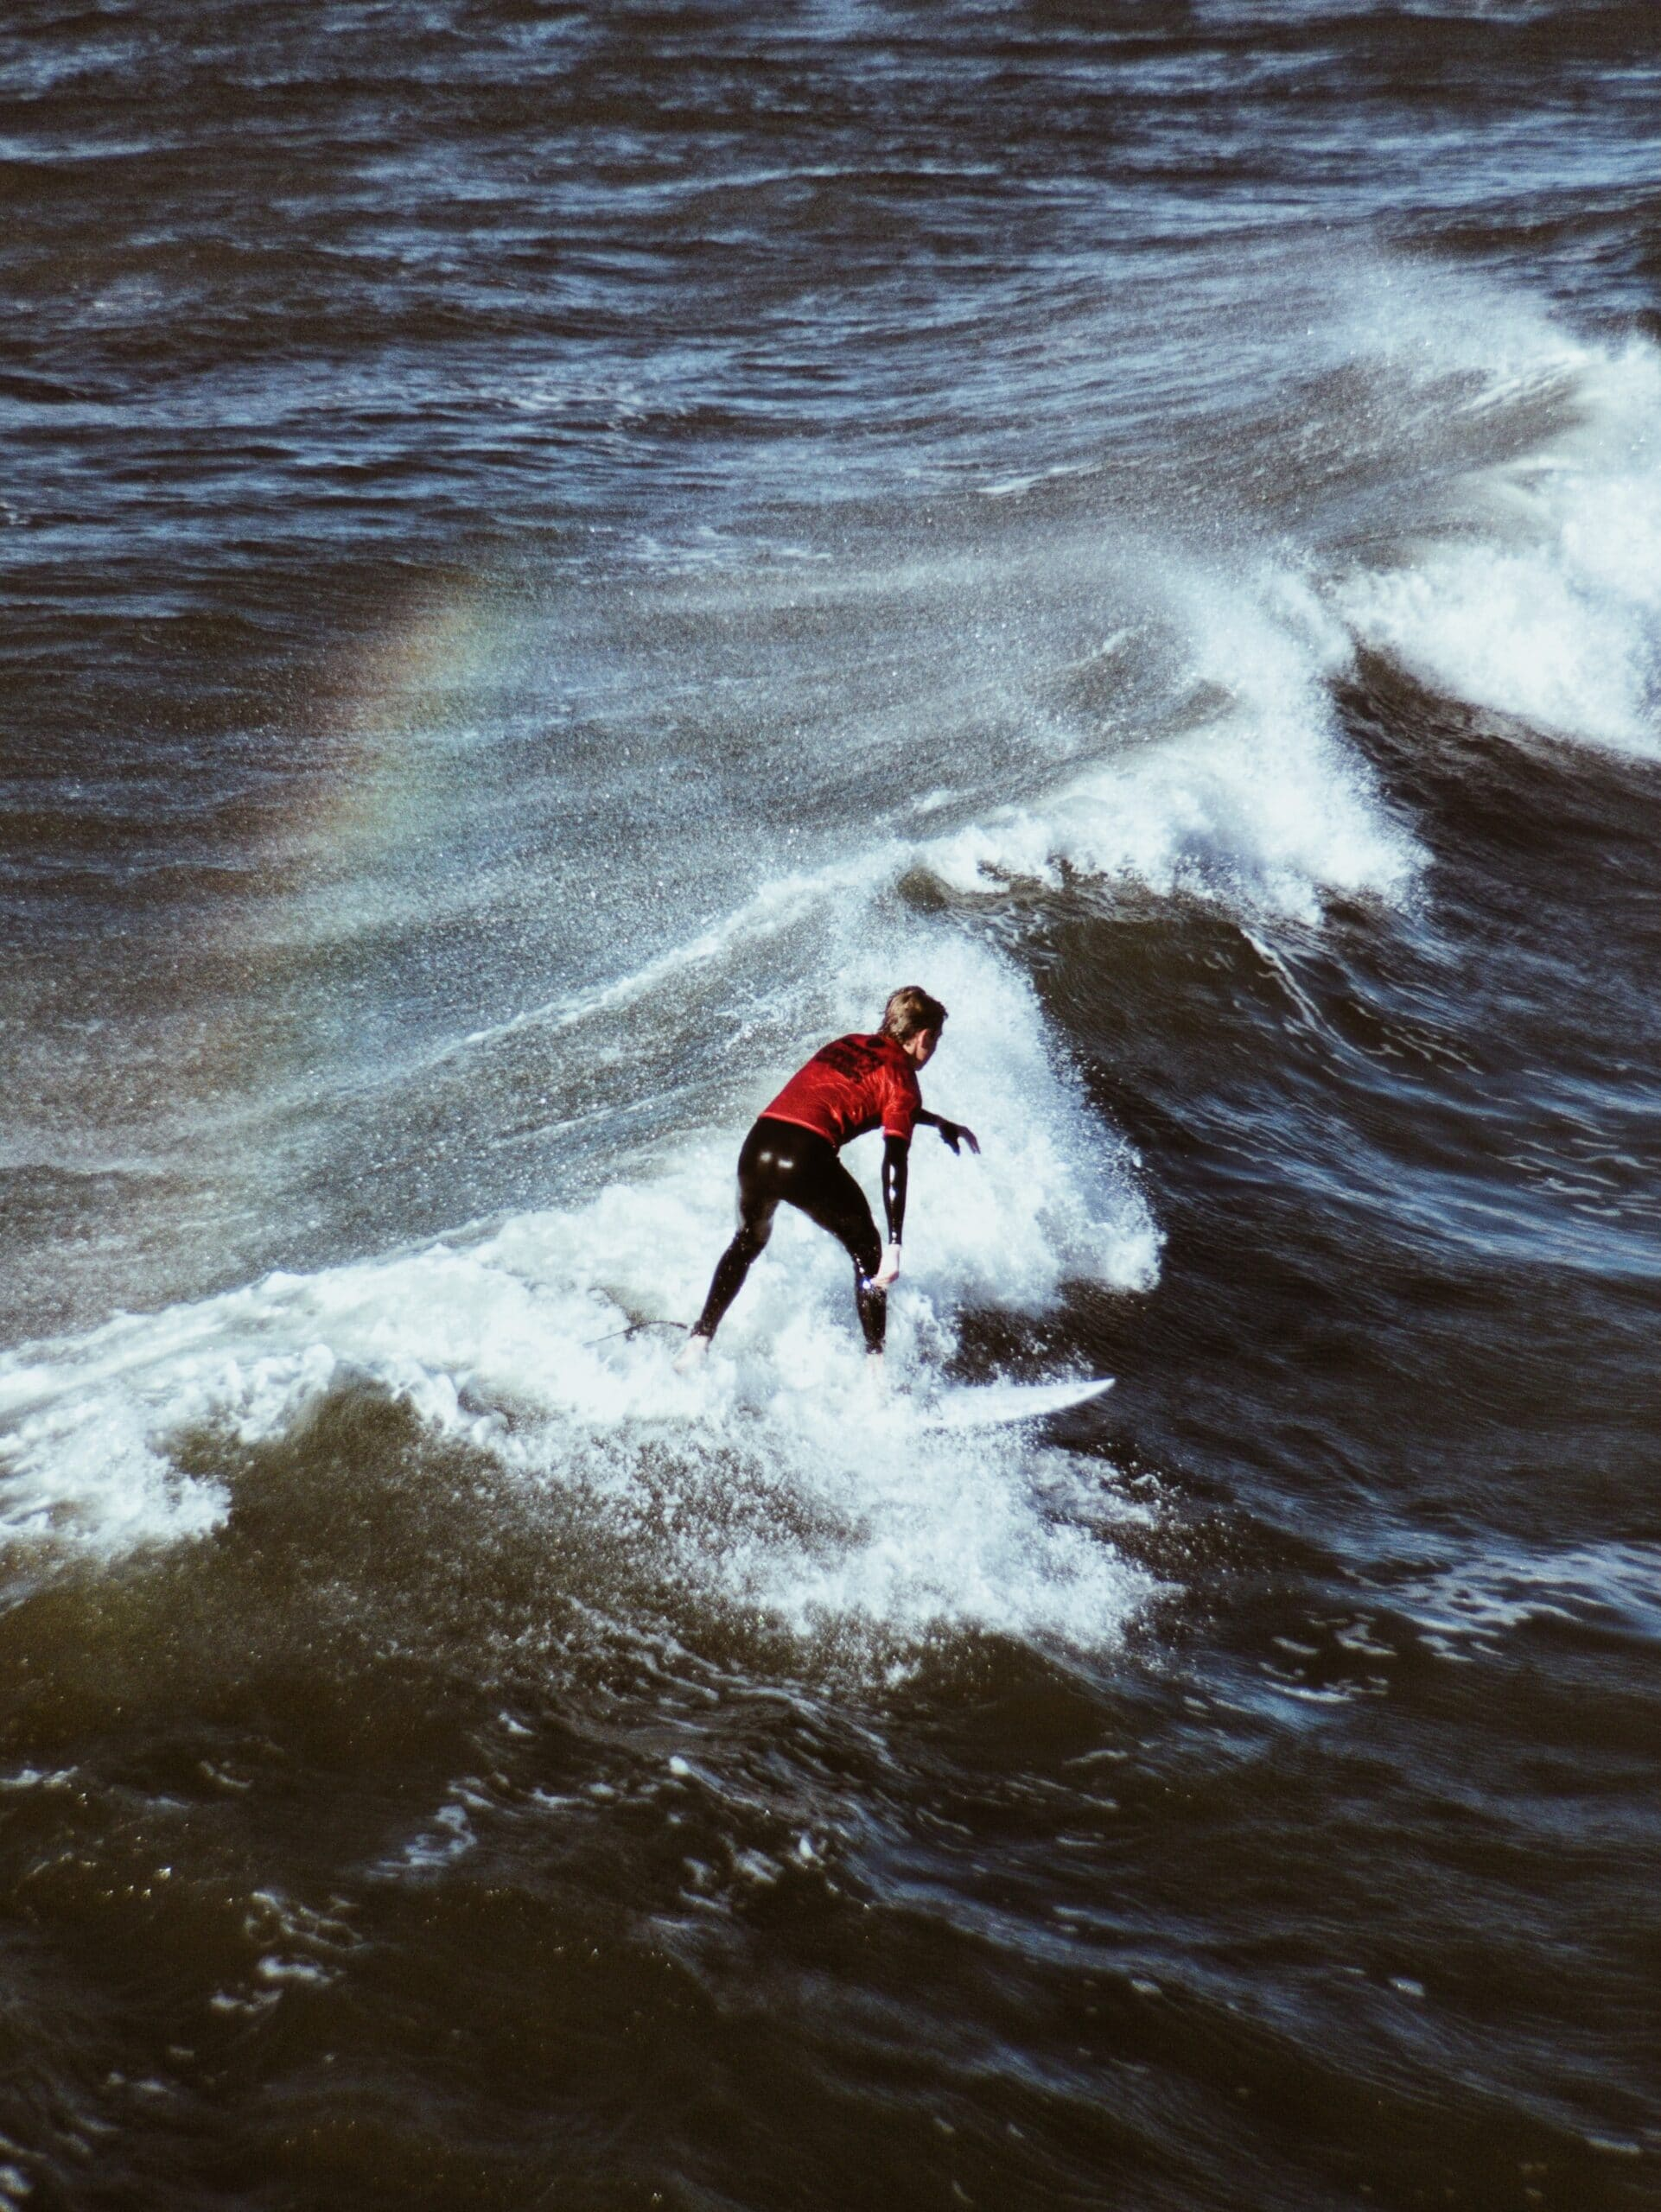 Surfing on wave